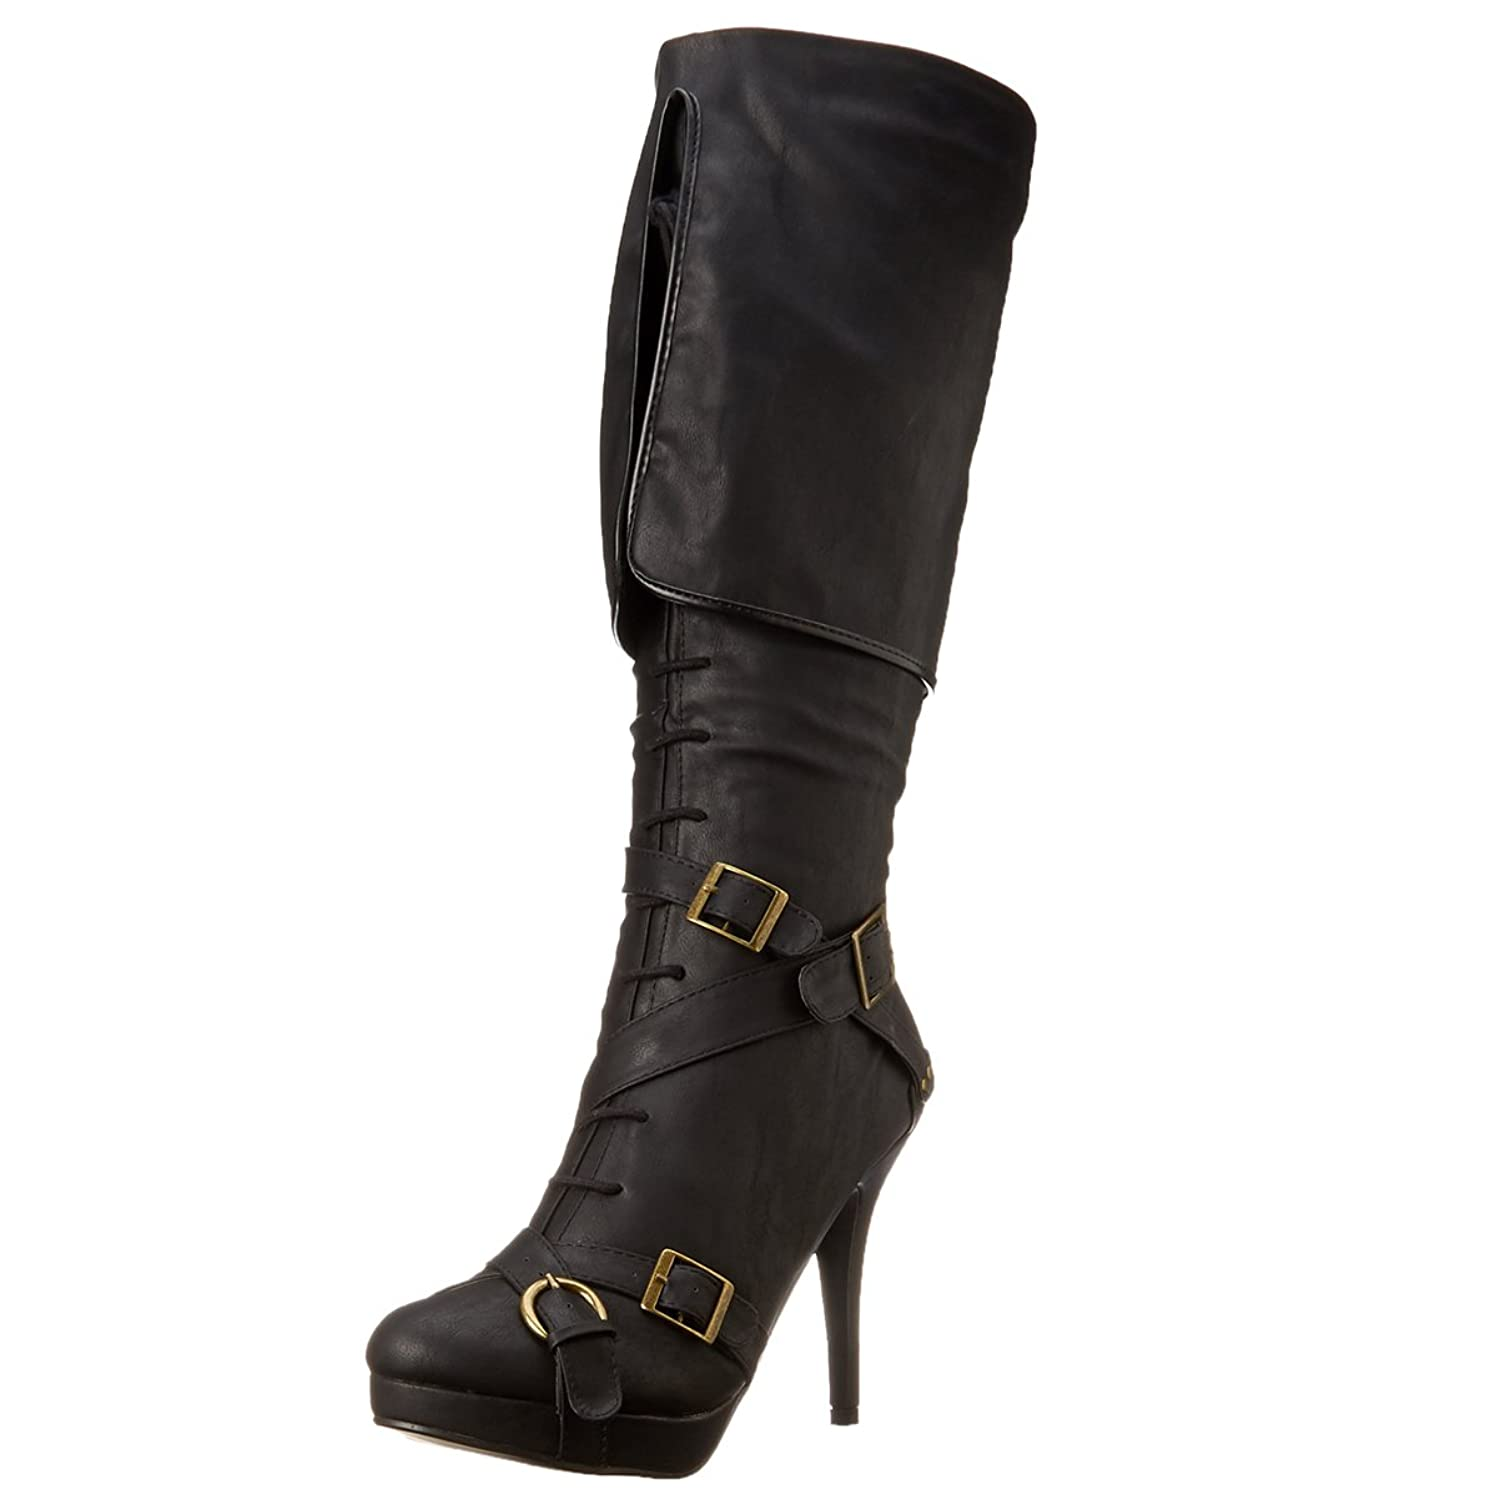 Women's Knee High Fold Over Black Faux Leather Boots